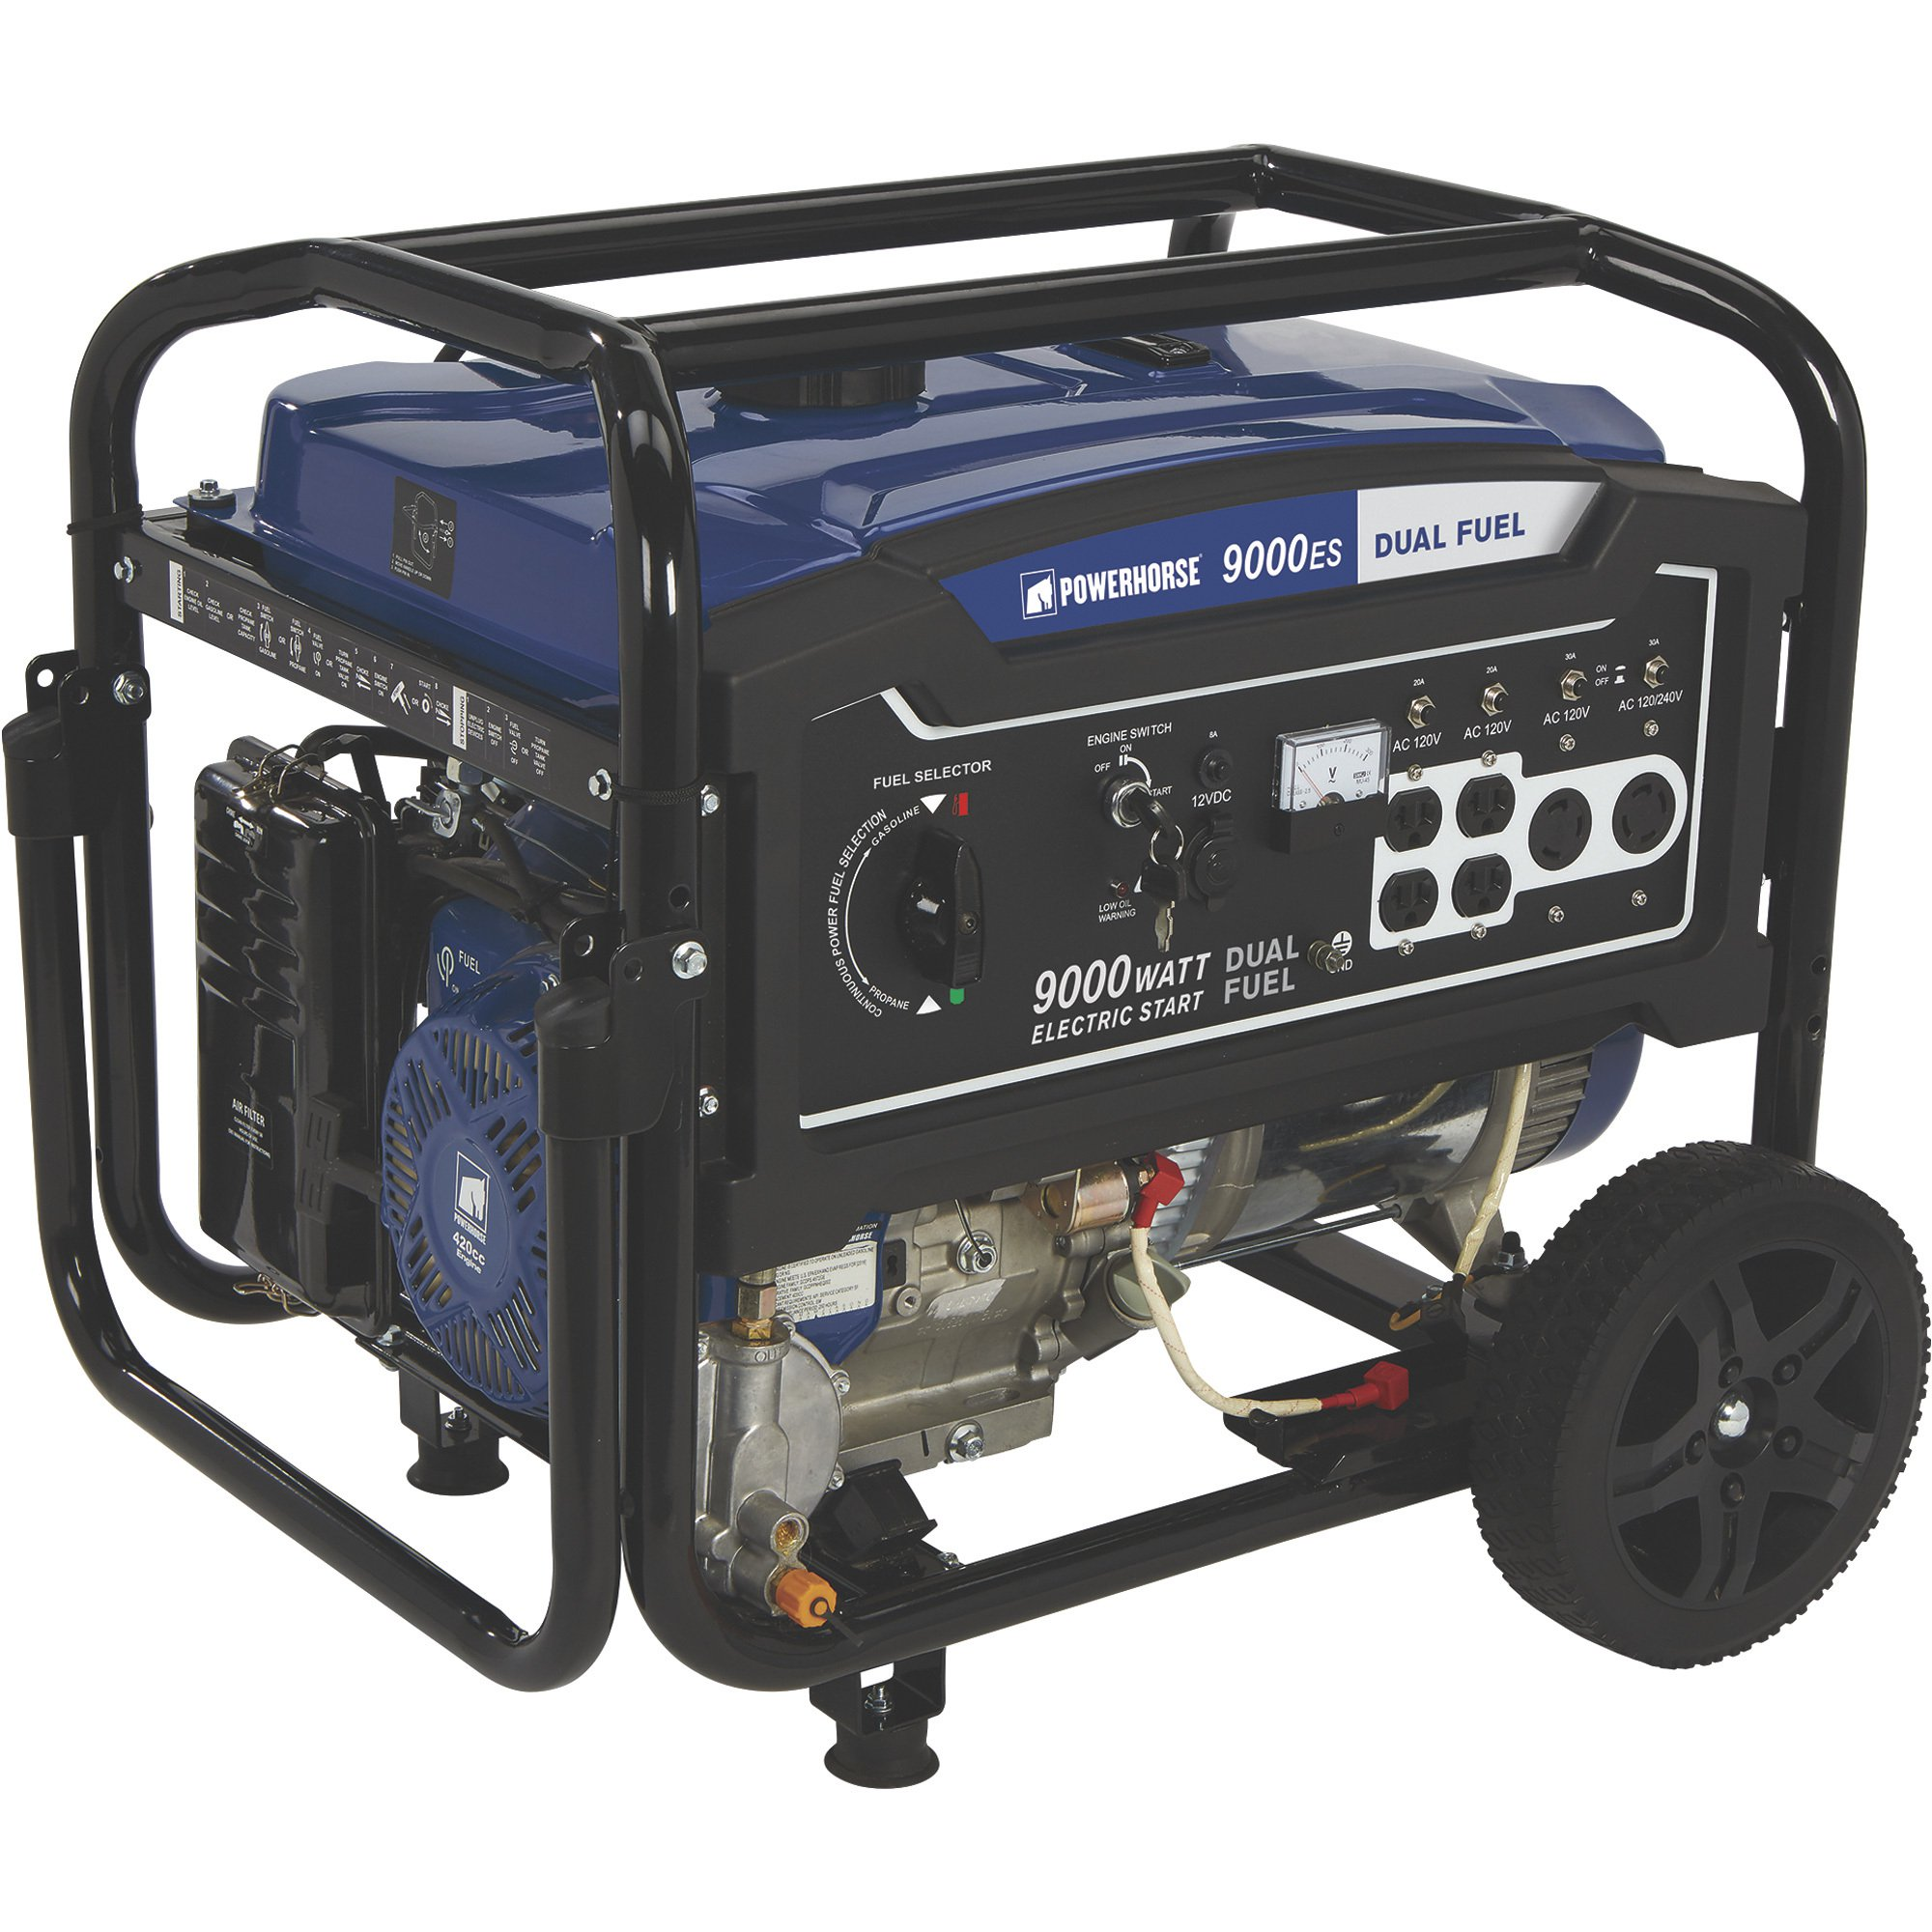 Powerhorse 750133 Dual Fuel Generator with Electric Start - 9,000 Surge Watts, 7,250 Rated Watts